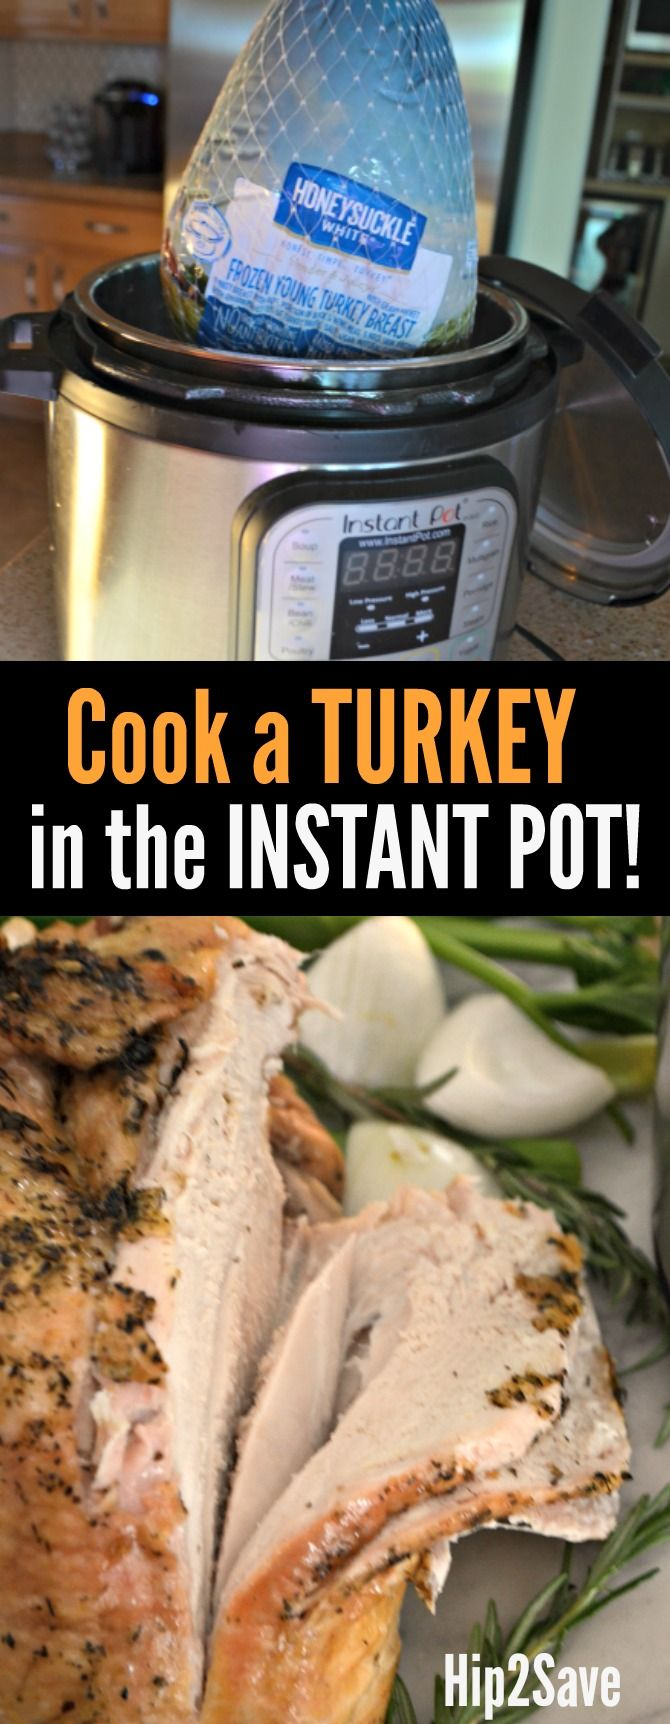 Here's how to cook a deliciously tender turkey using your Instant Pot pressure cooker in under an hour!